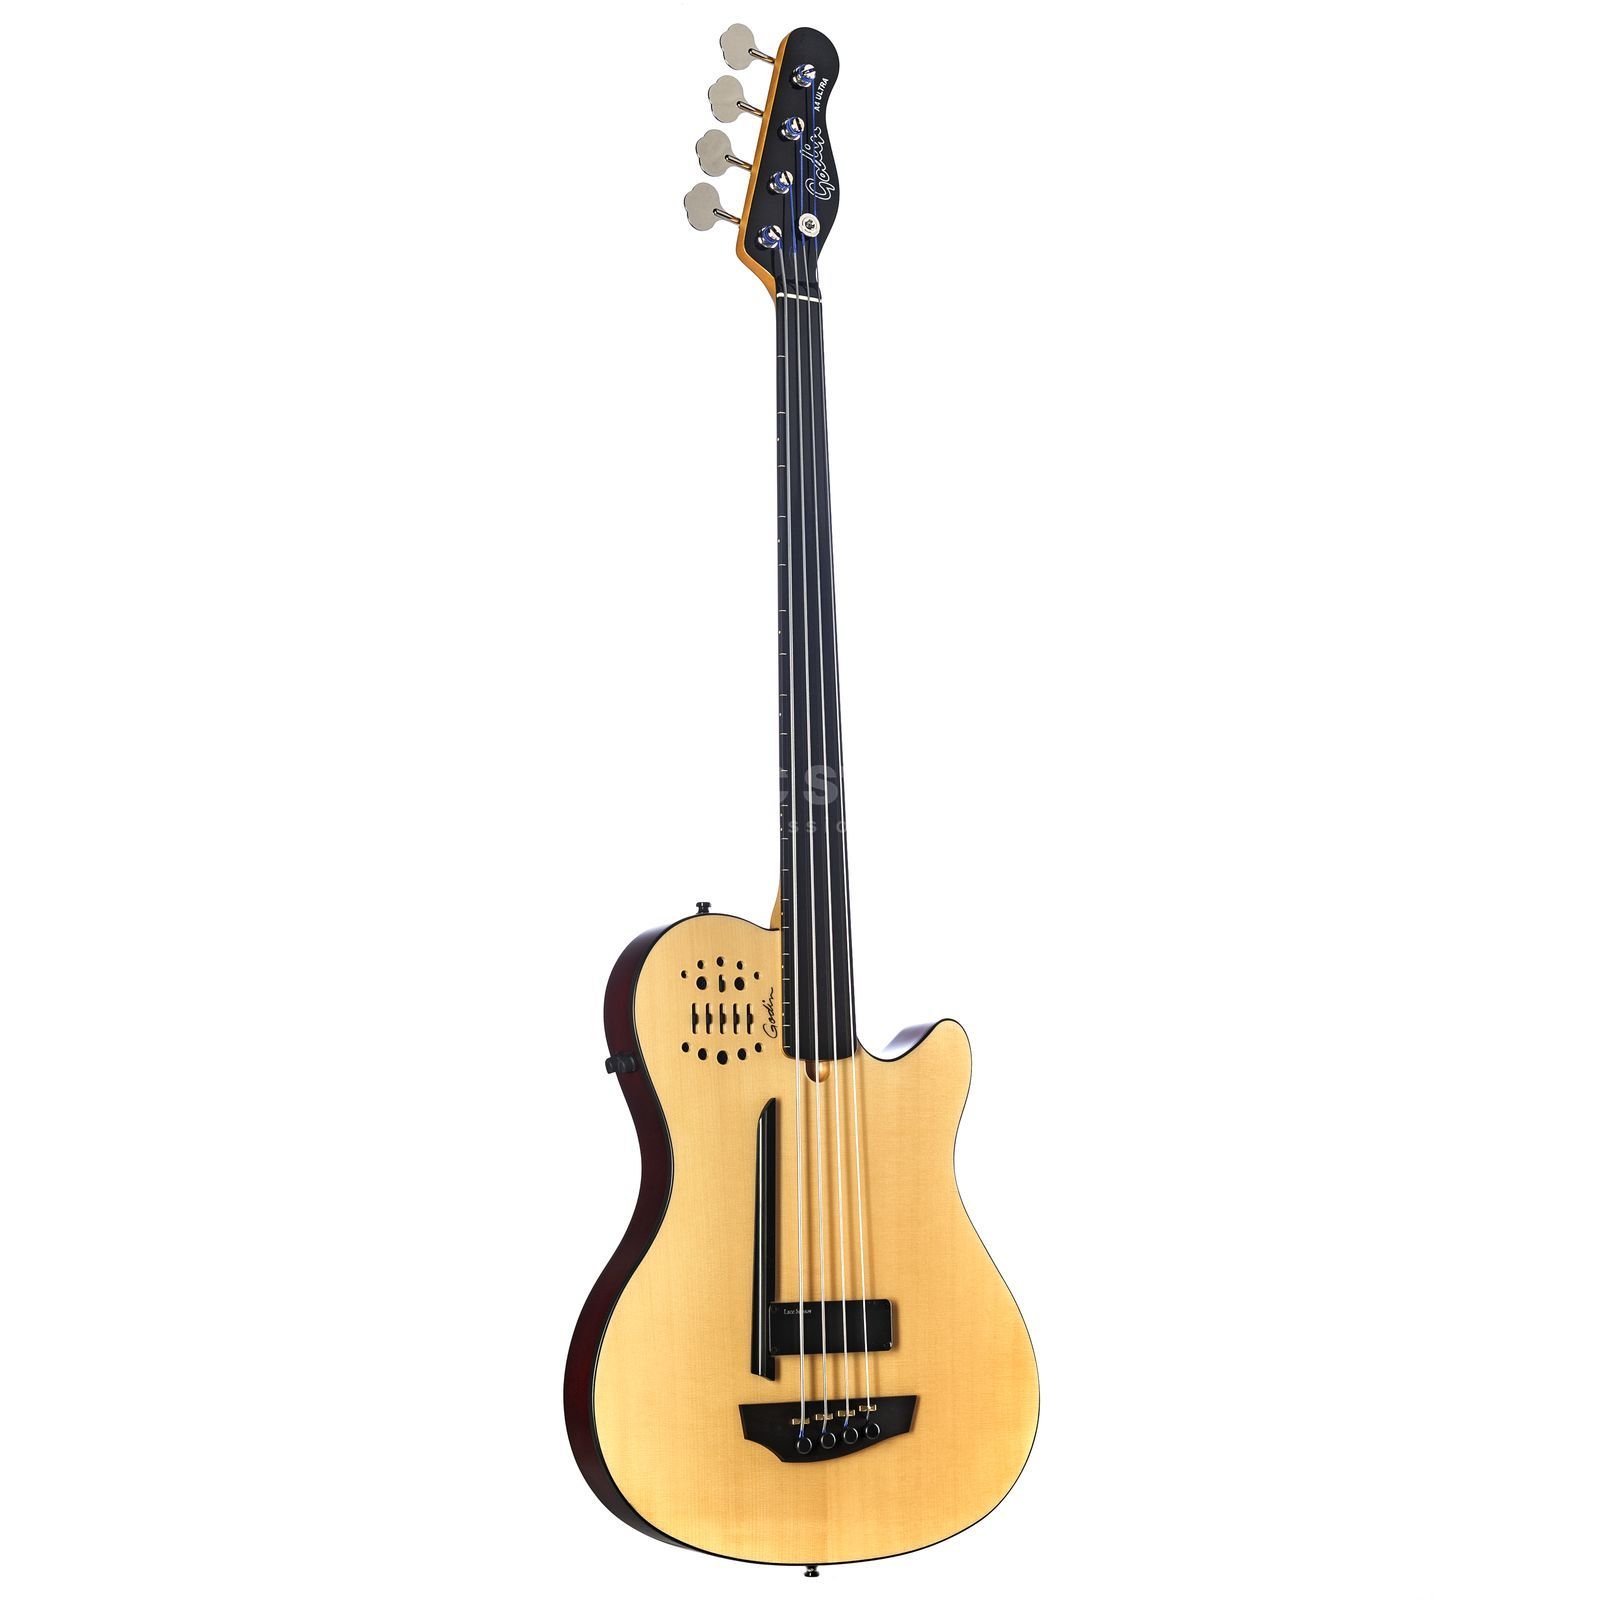 Godin A4 Ultra Fretless SA Natural Semi- Gloss Image du produit